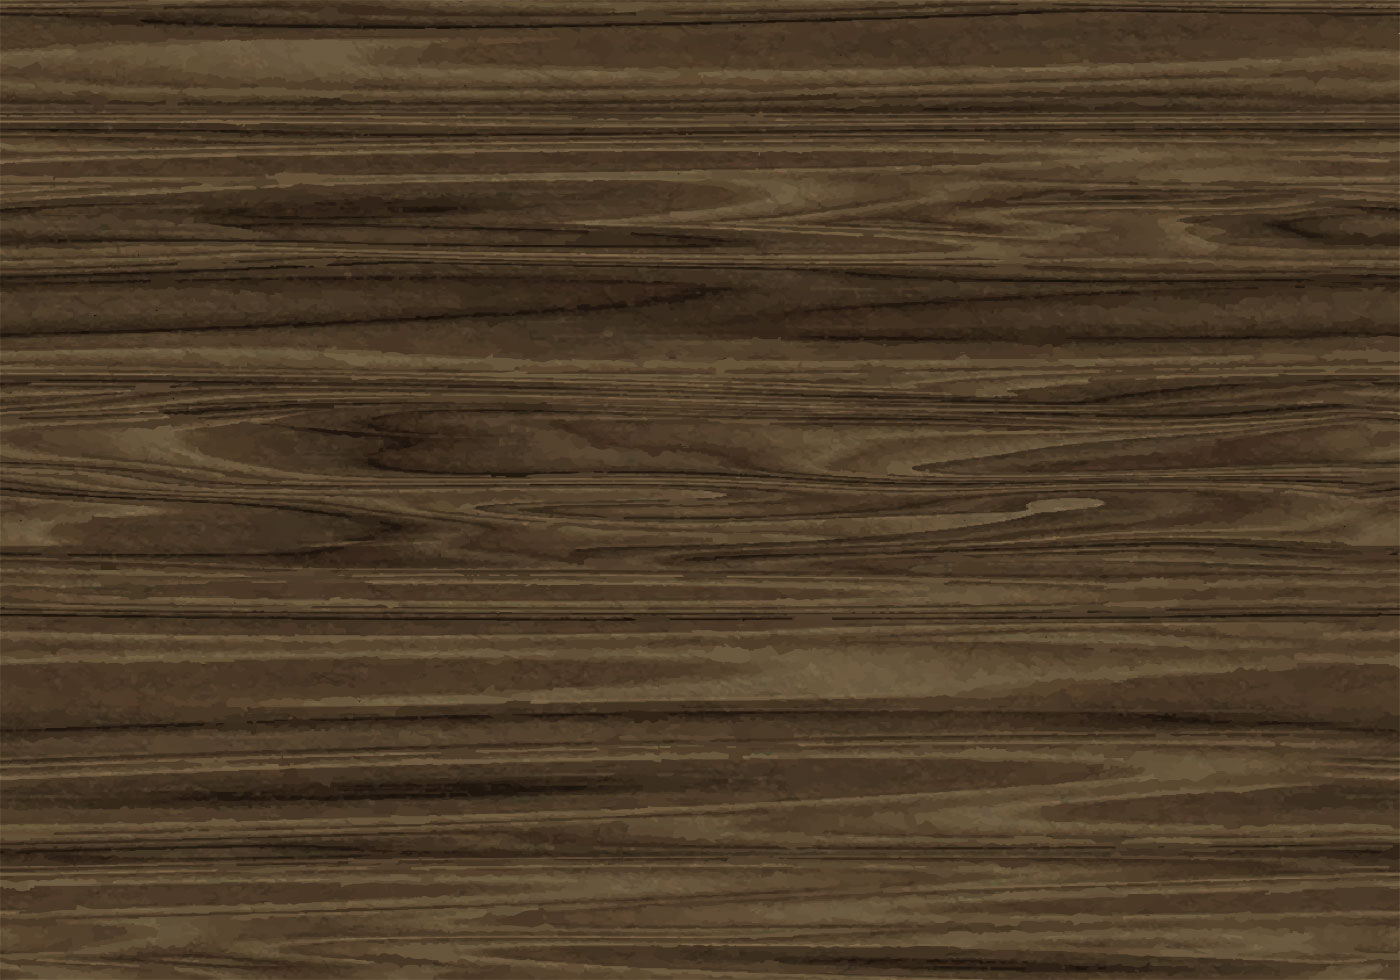 Free Wood Texture Vector Download Free Vector Art Stock